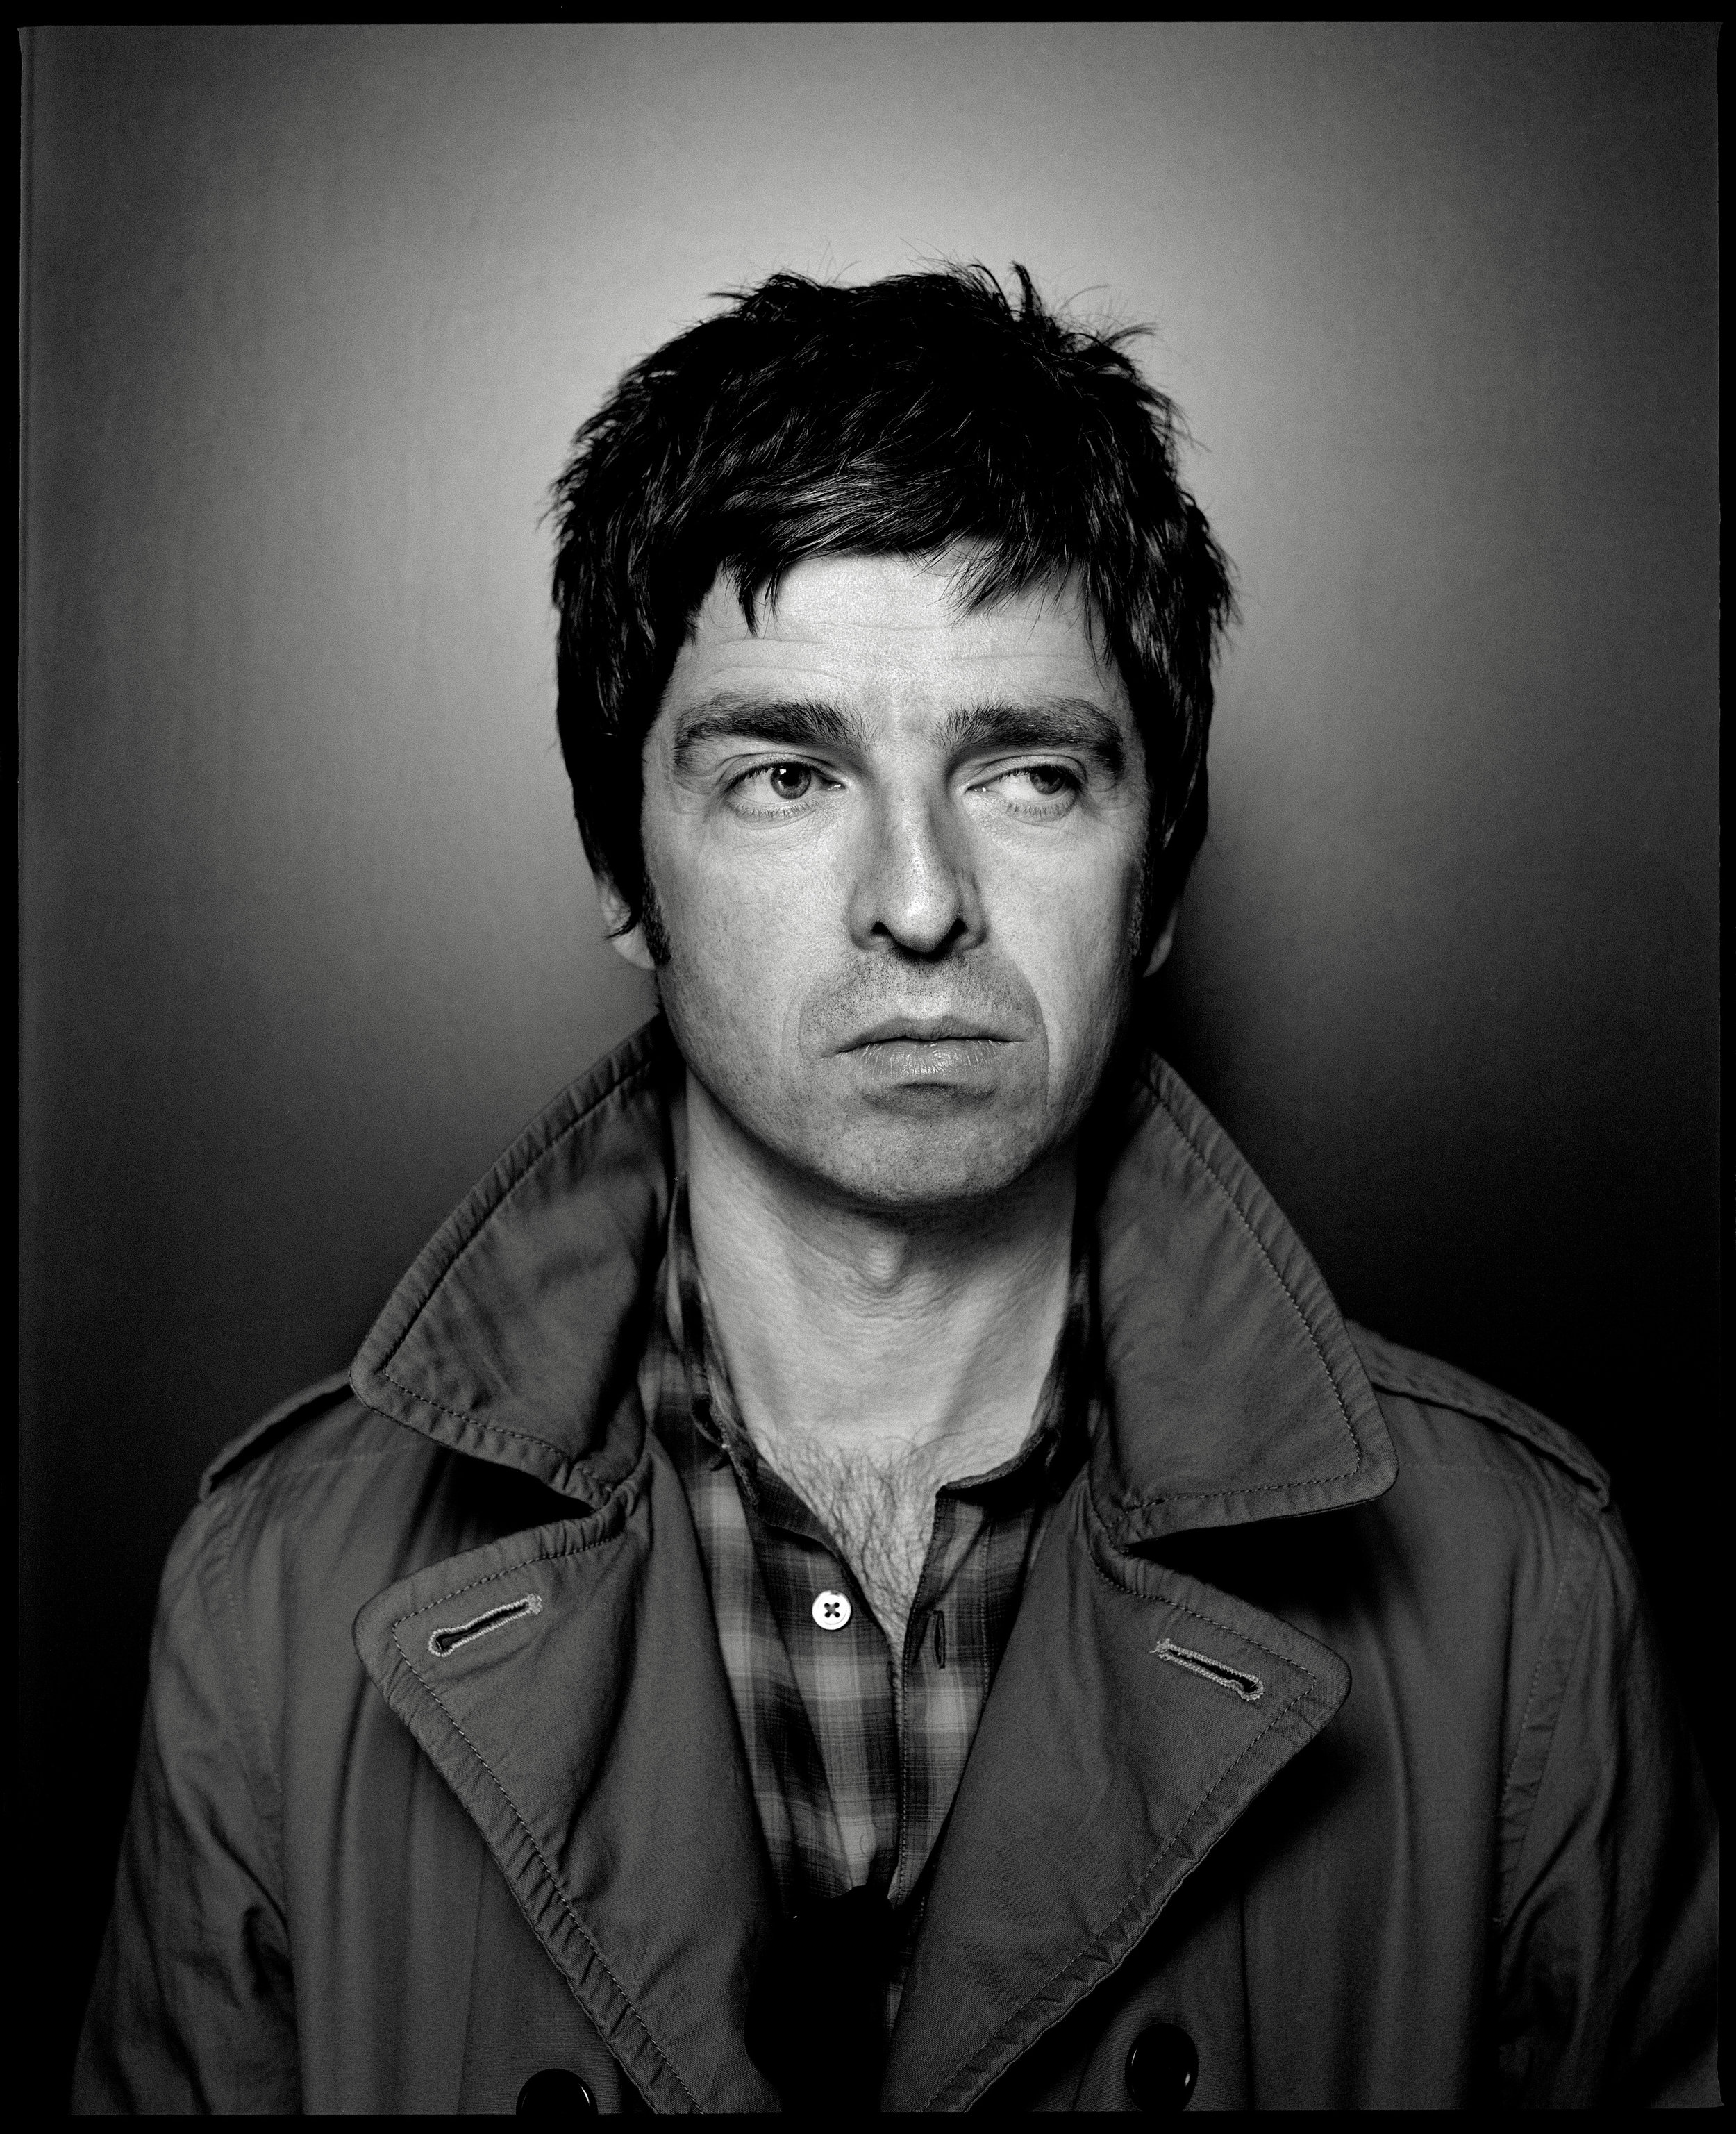 Noel Gallagher / Oasis